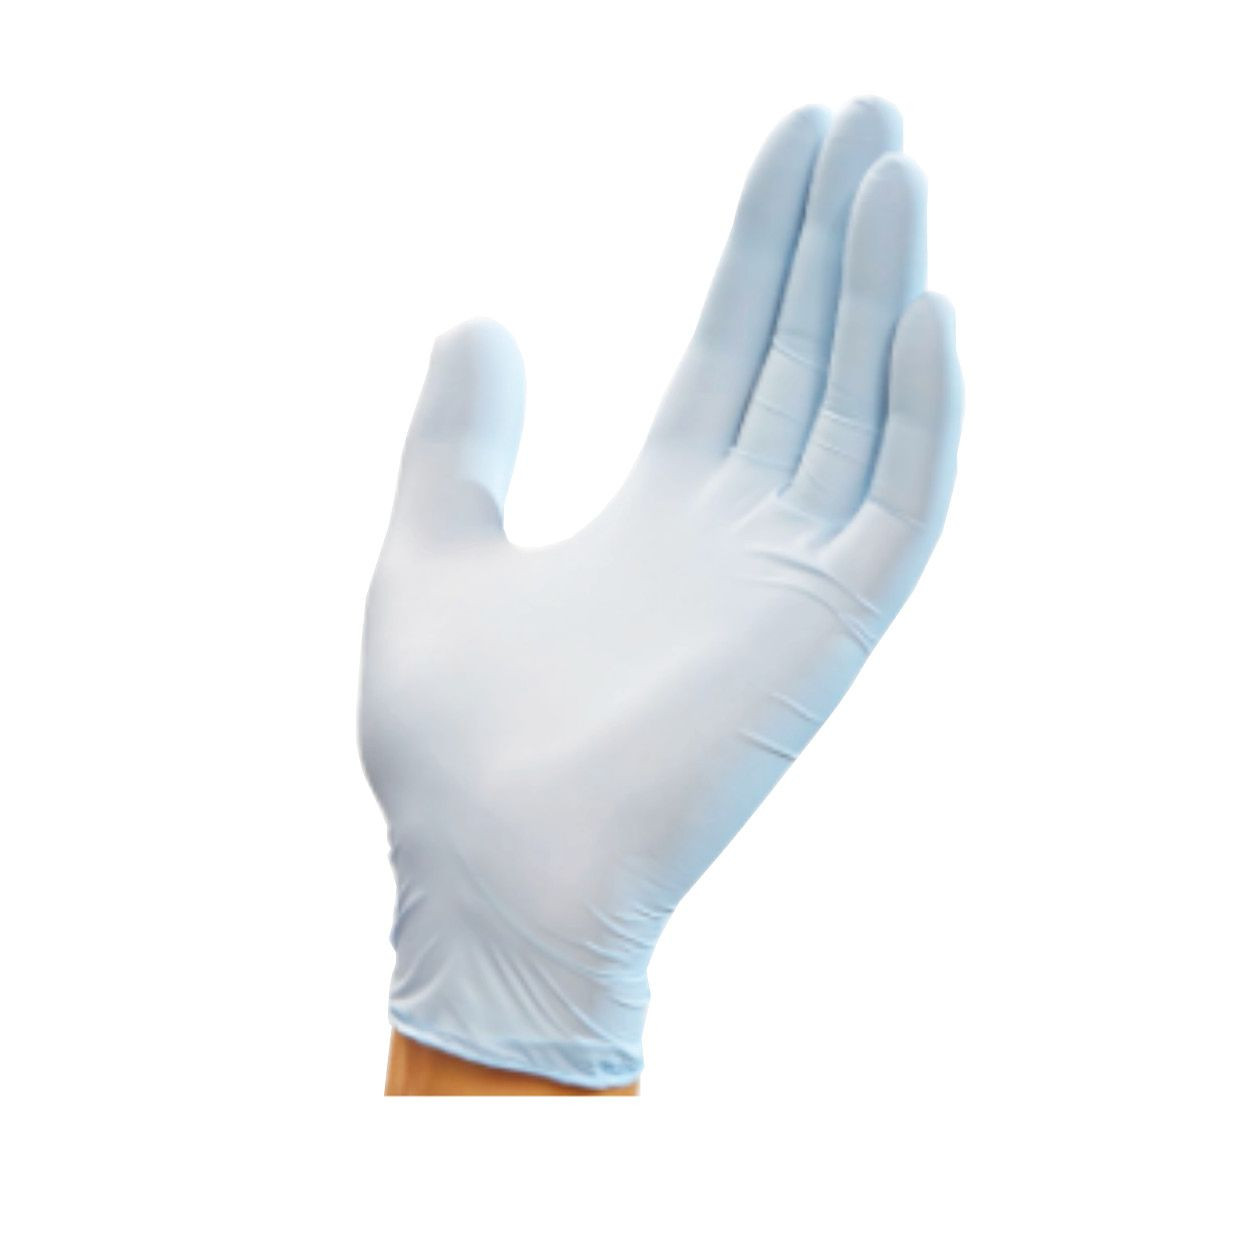 GloveOn COATS Powder Free Nitrile Examination Gloves